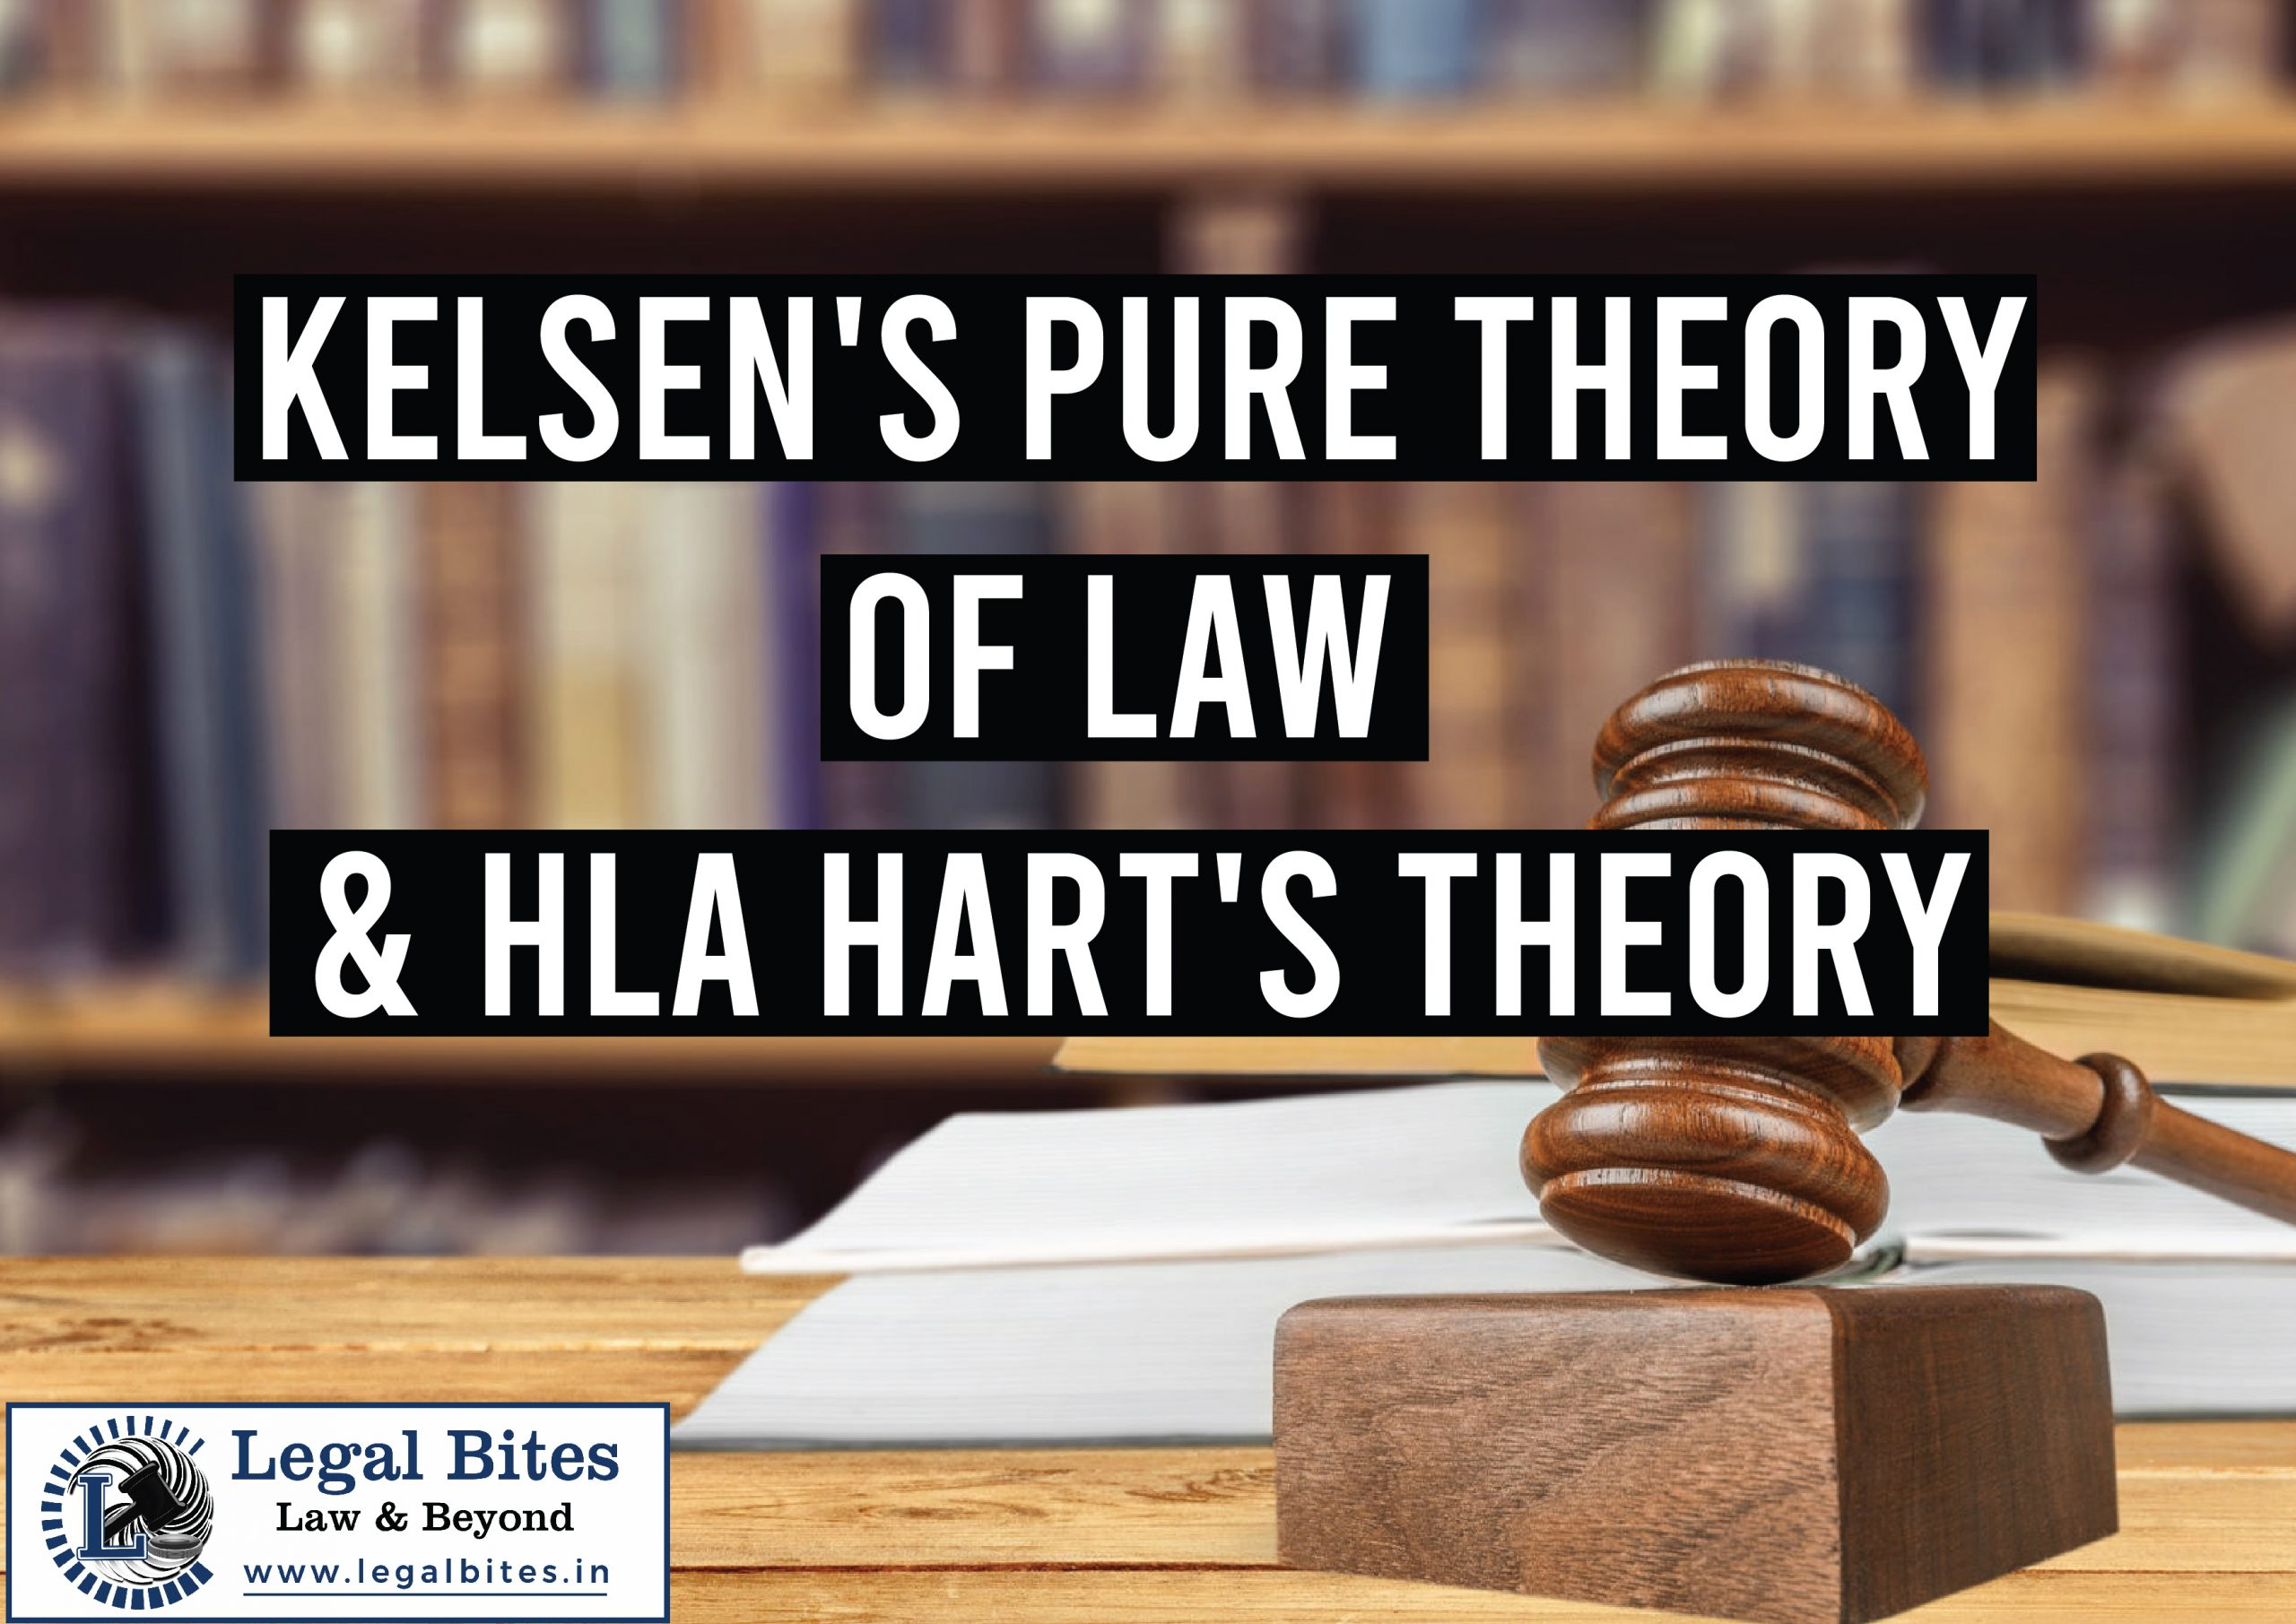 Kelsen's Pure Theory of Law & HLA Hart's Theory